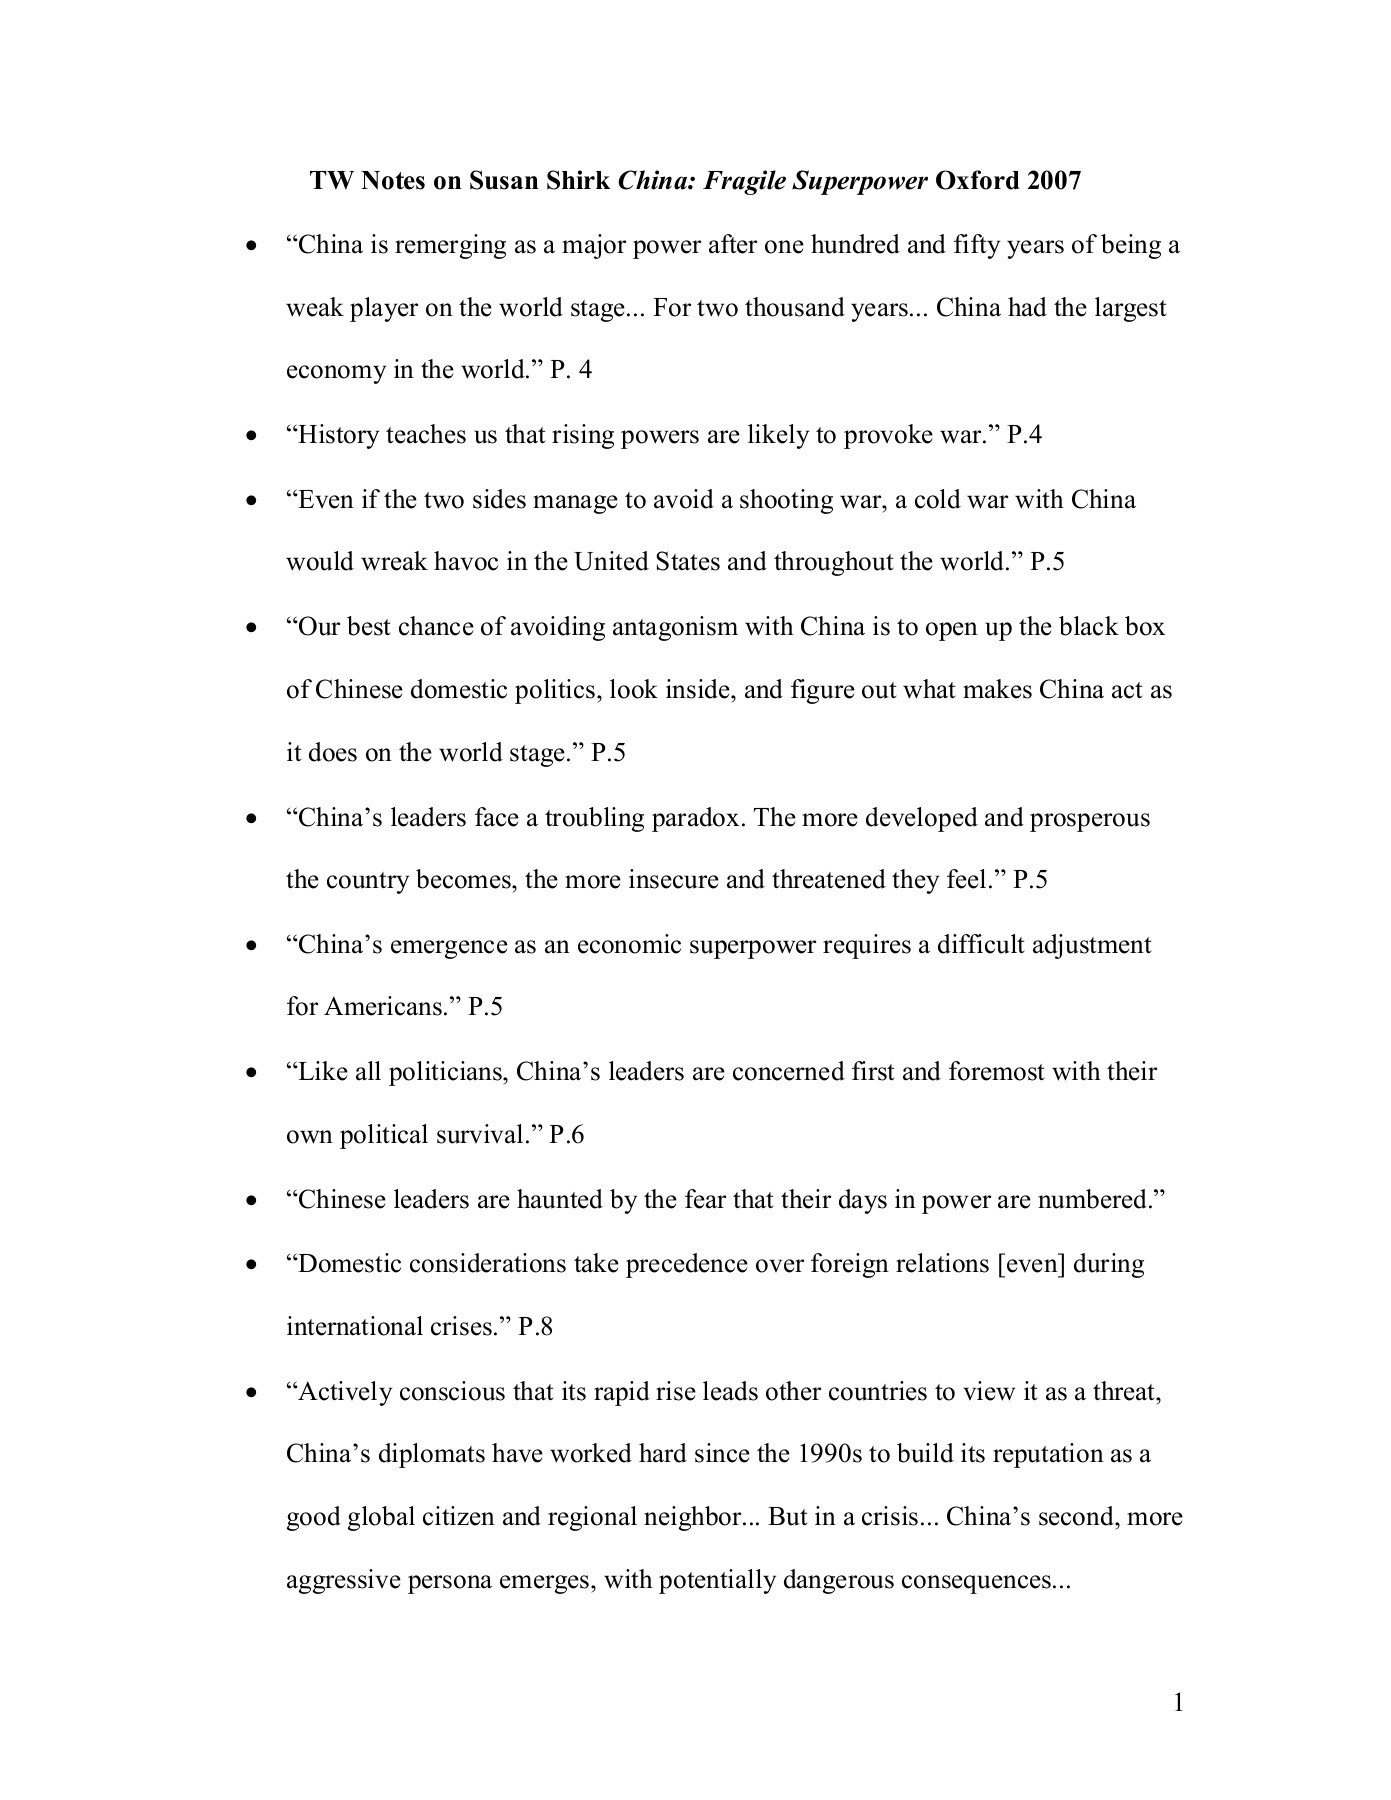 TW Notes on Susan Shirk China: Fragile Superpower Oxford 2007   FlipHTML5